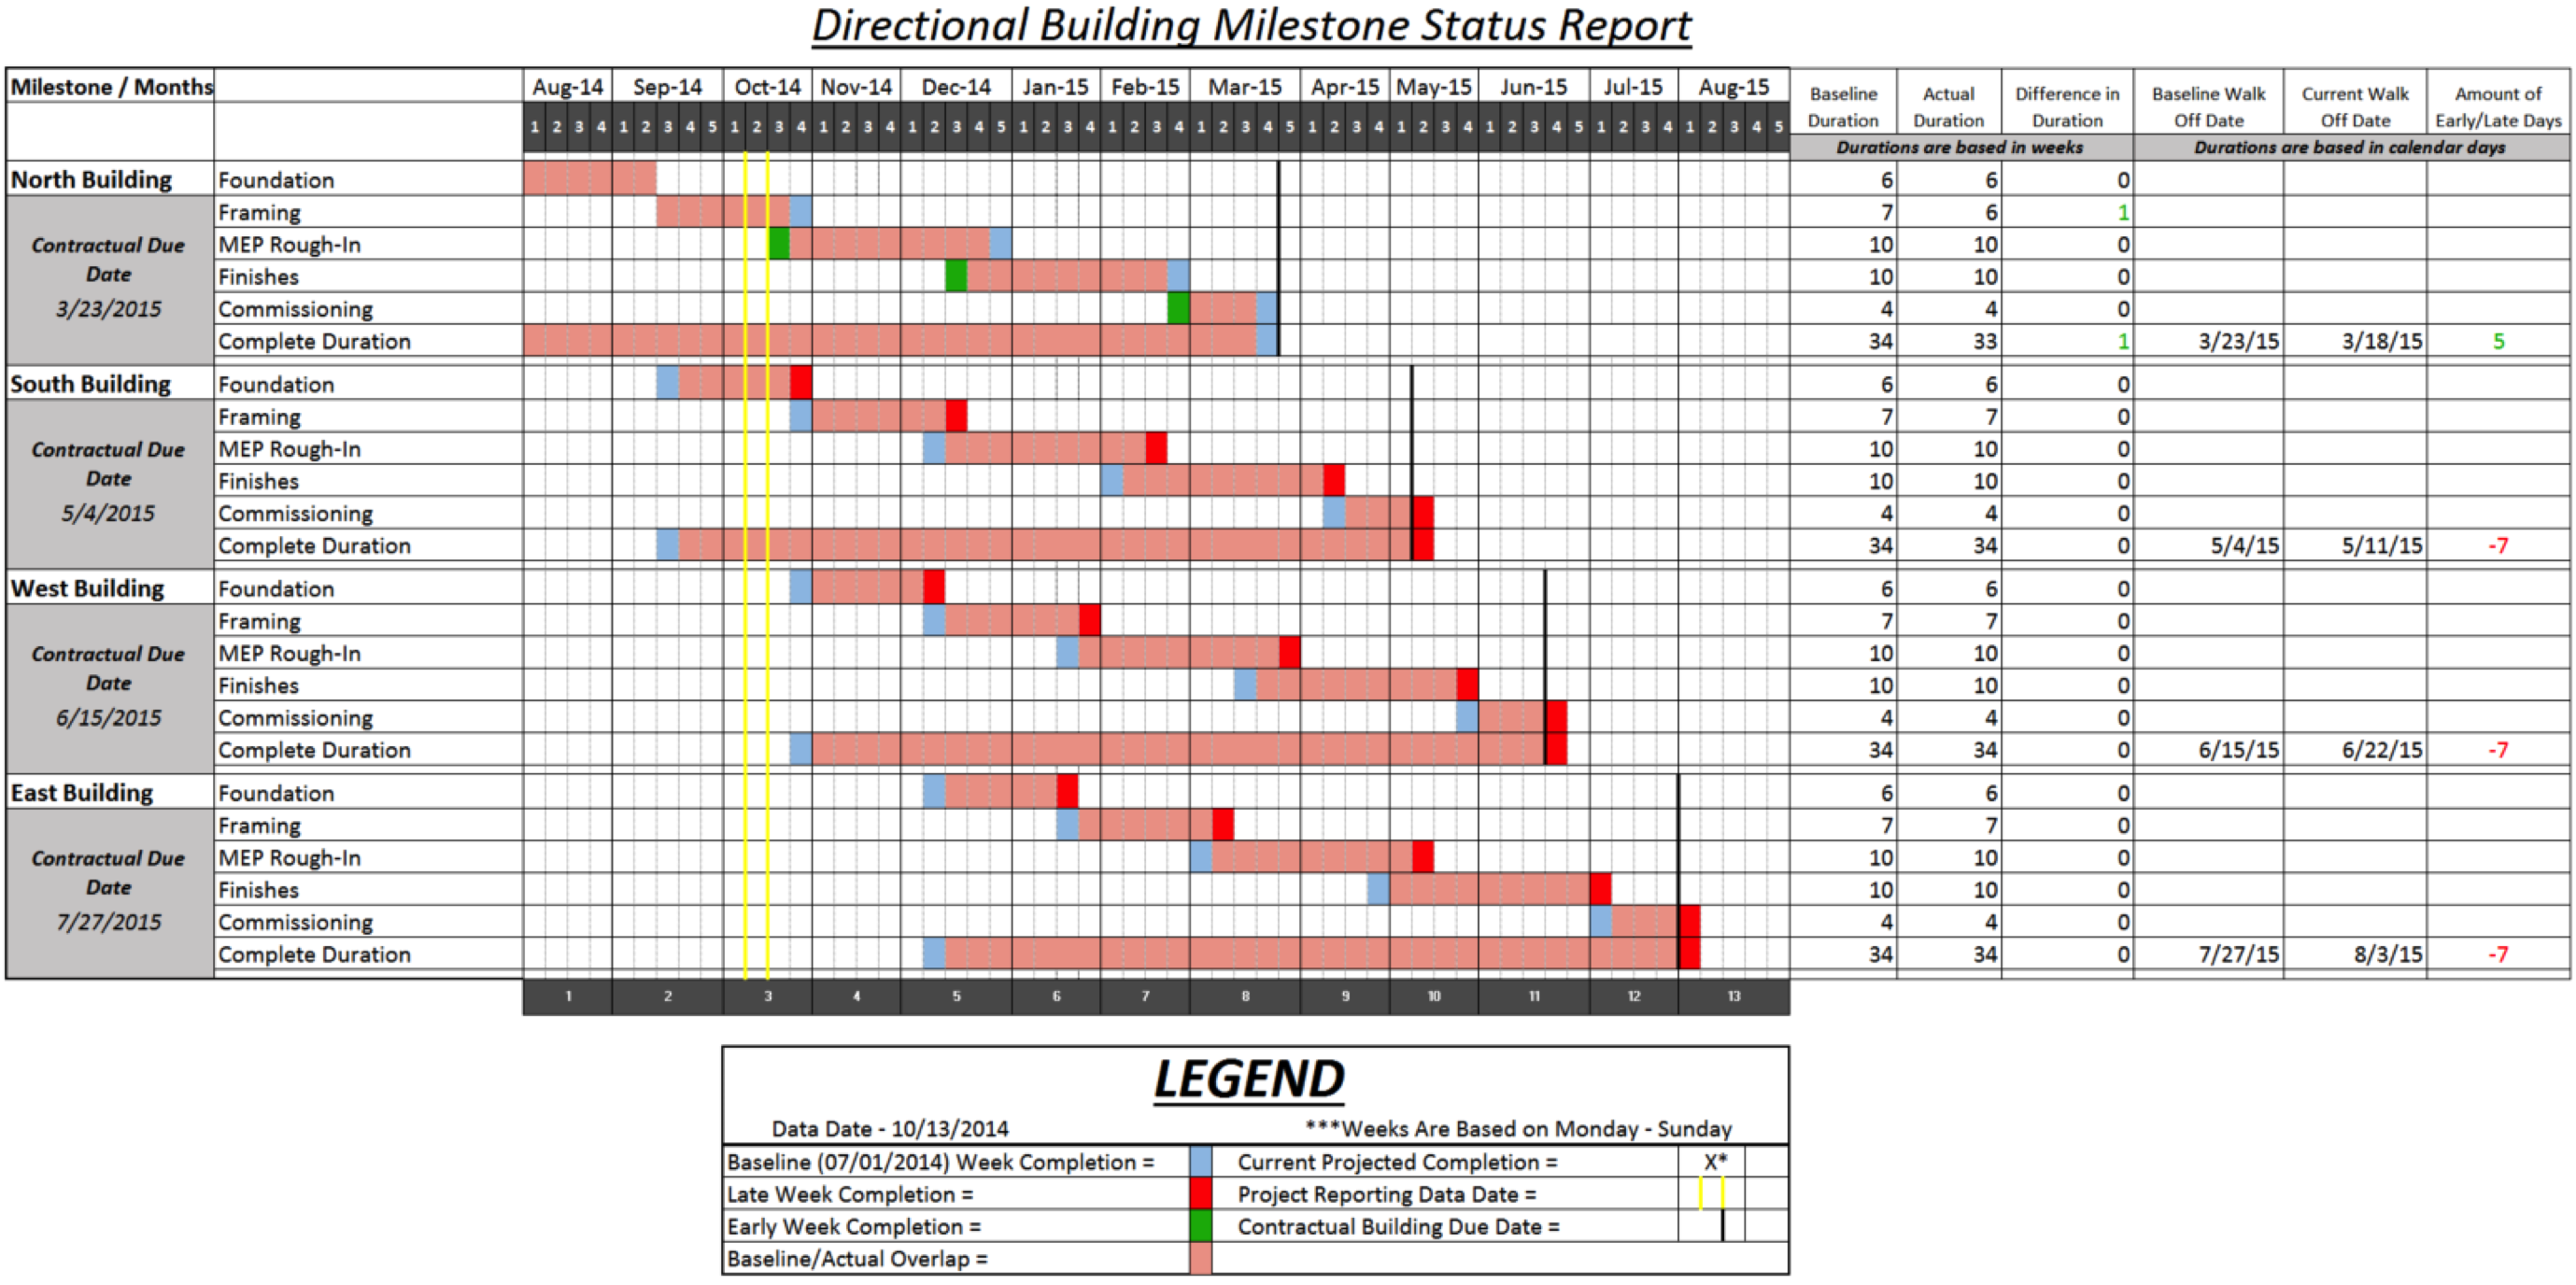 directional building status report 2